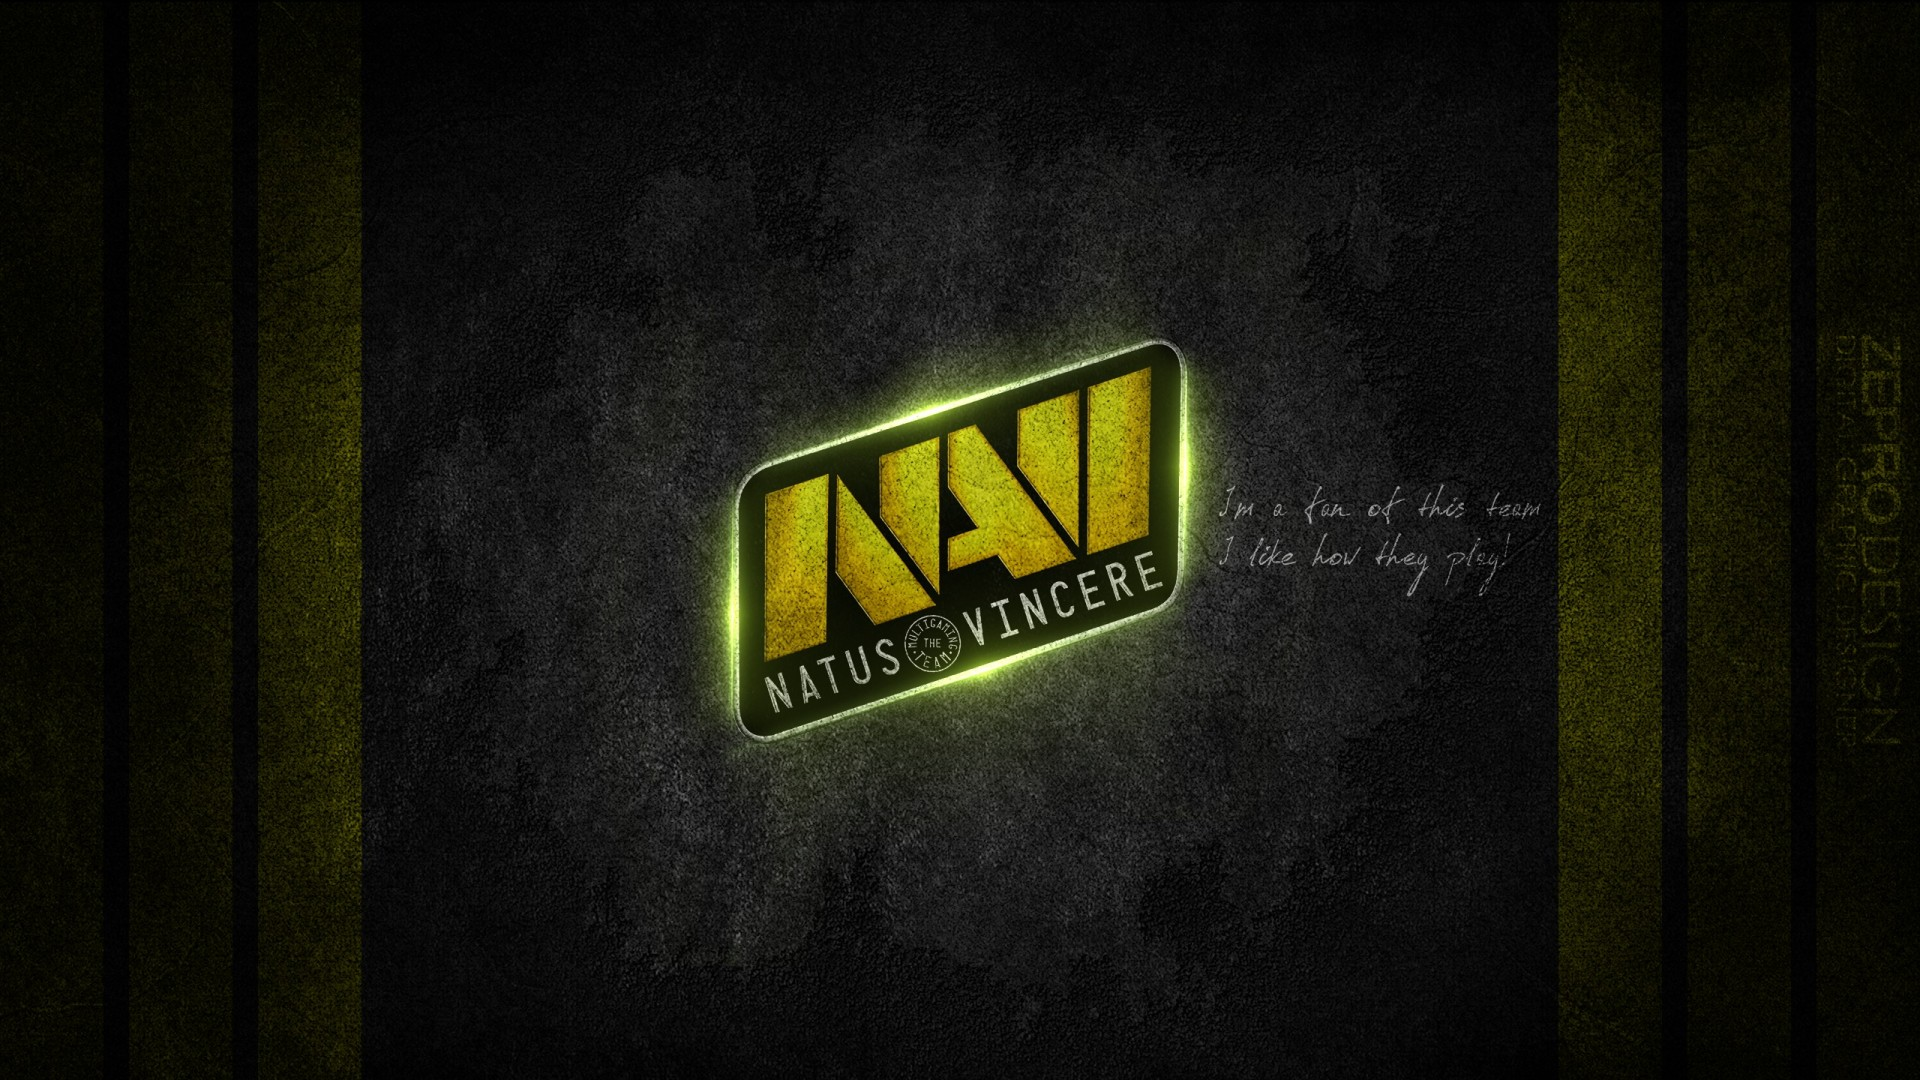 Natus Vincere (Navi) download hd wallpapers